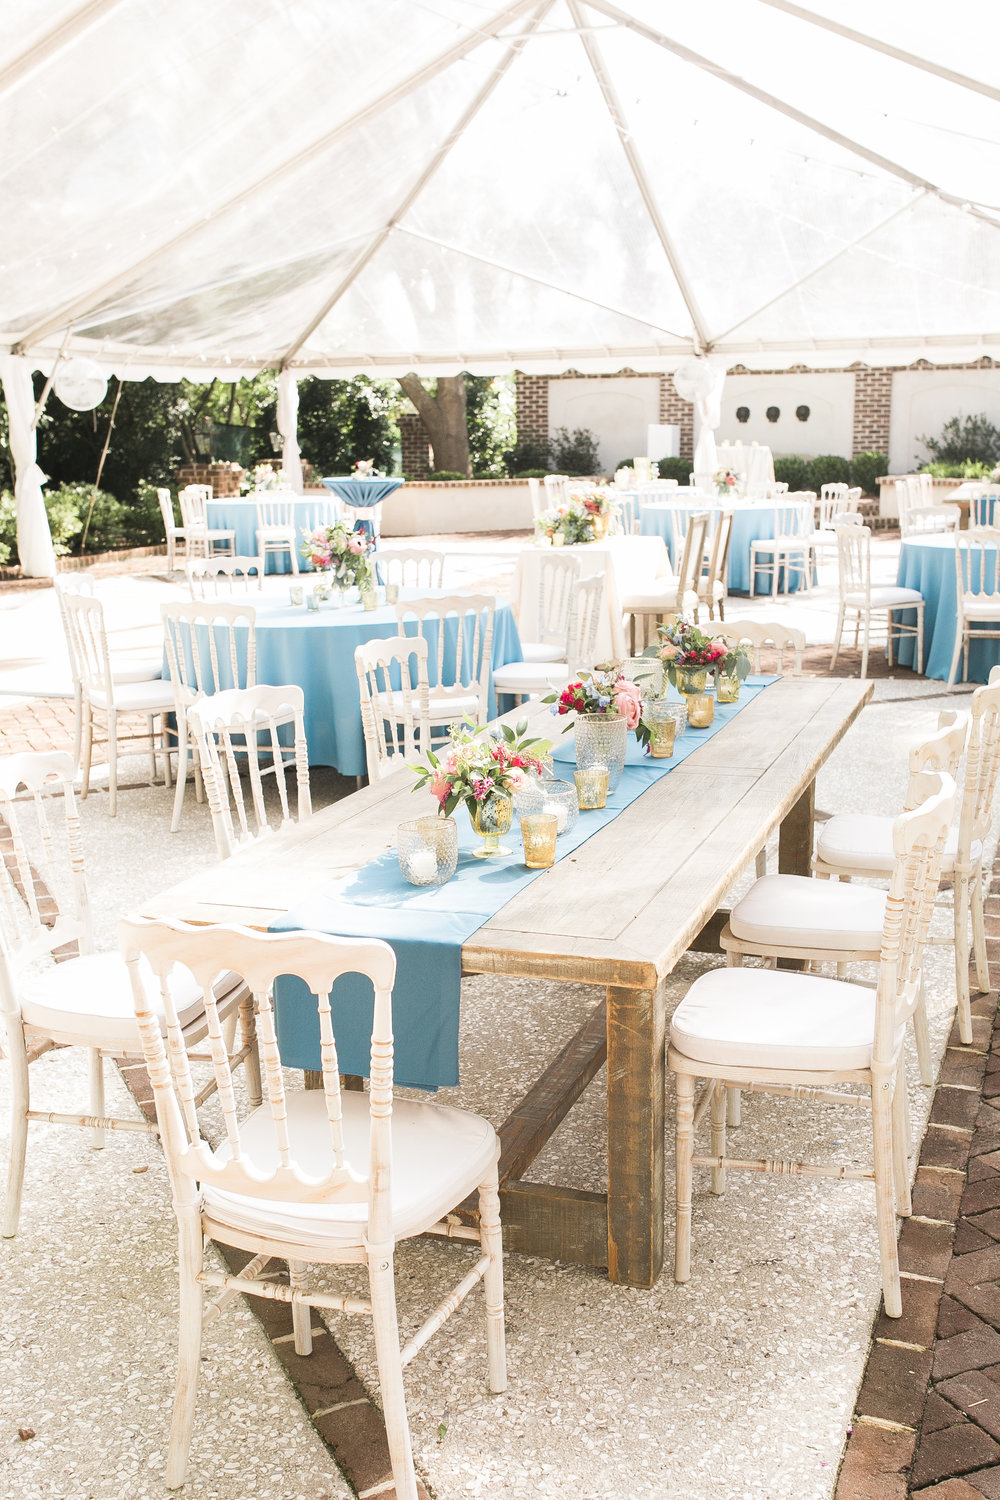 Outdoor reception with blue table runners at Thomas Bennett House wedding  Colorful outdoor reception at The Thomas Bennett House wedding in Charleston, SC  //  photographed by Jenna Weddings  Traditional wedding ceremony at Cathedral of St. John the Baptist in Charleston, SC  //  A Lowcountry Wedding Magazine & Blog